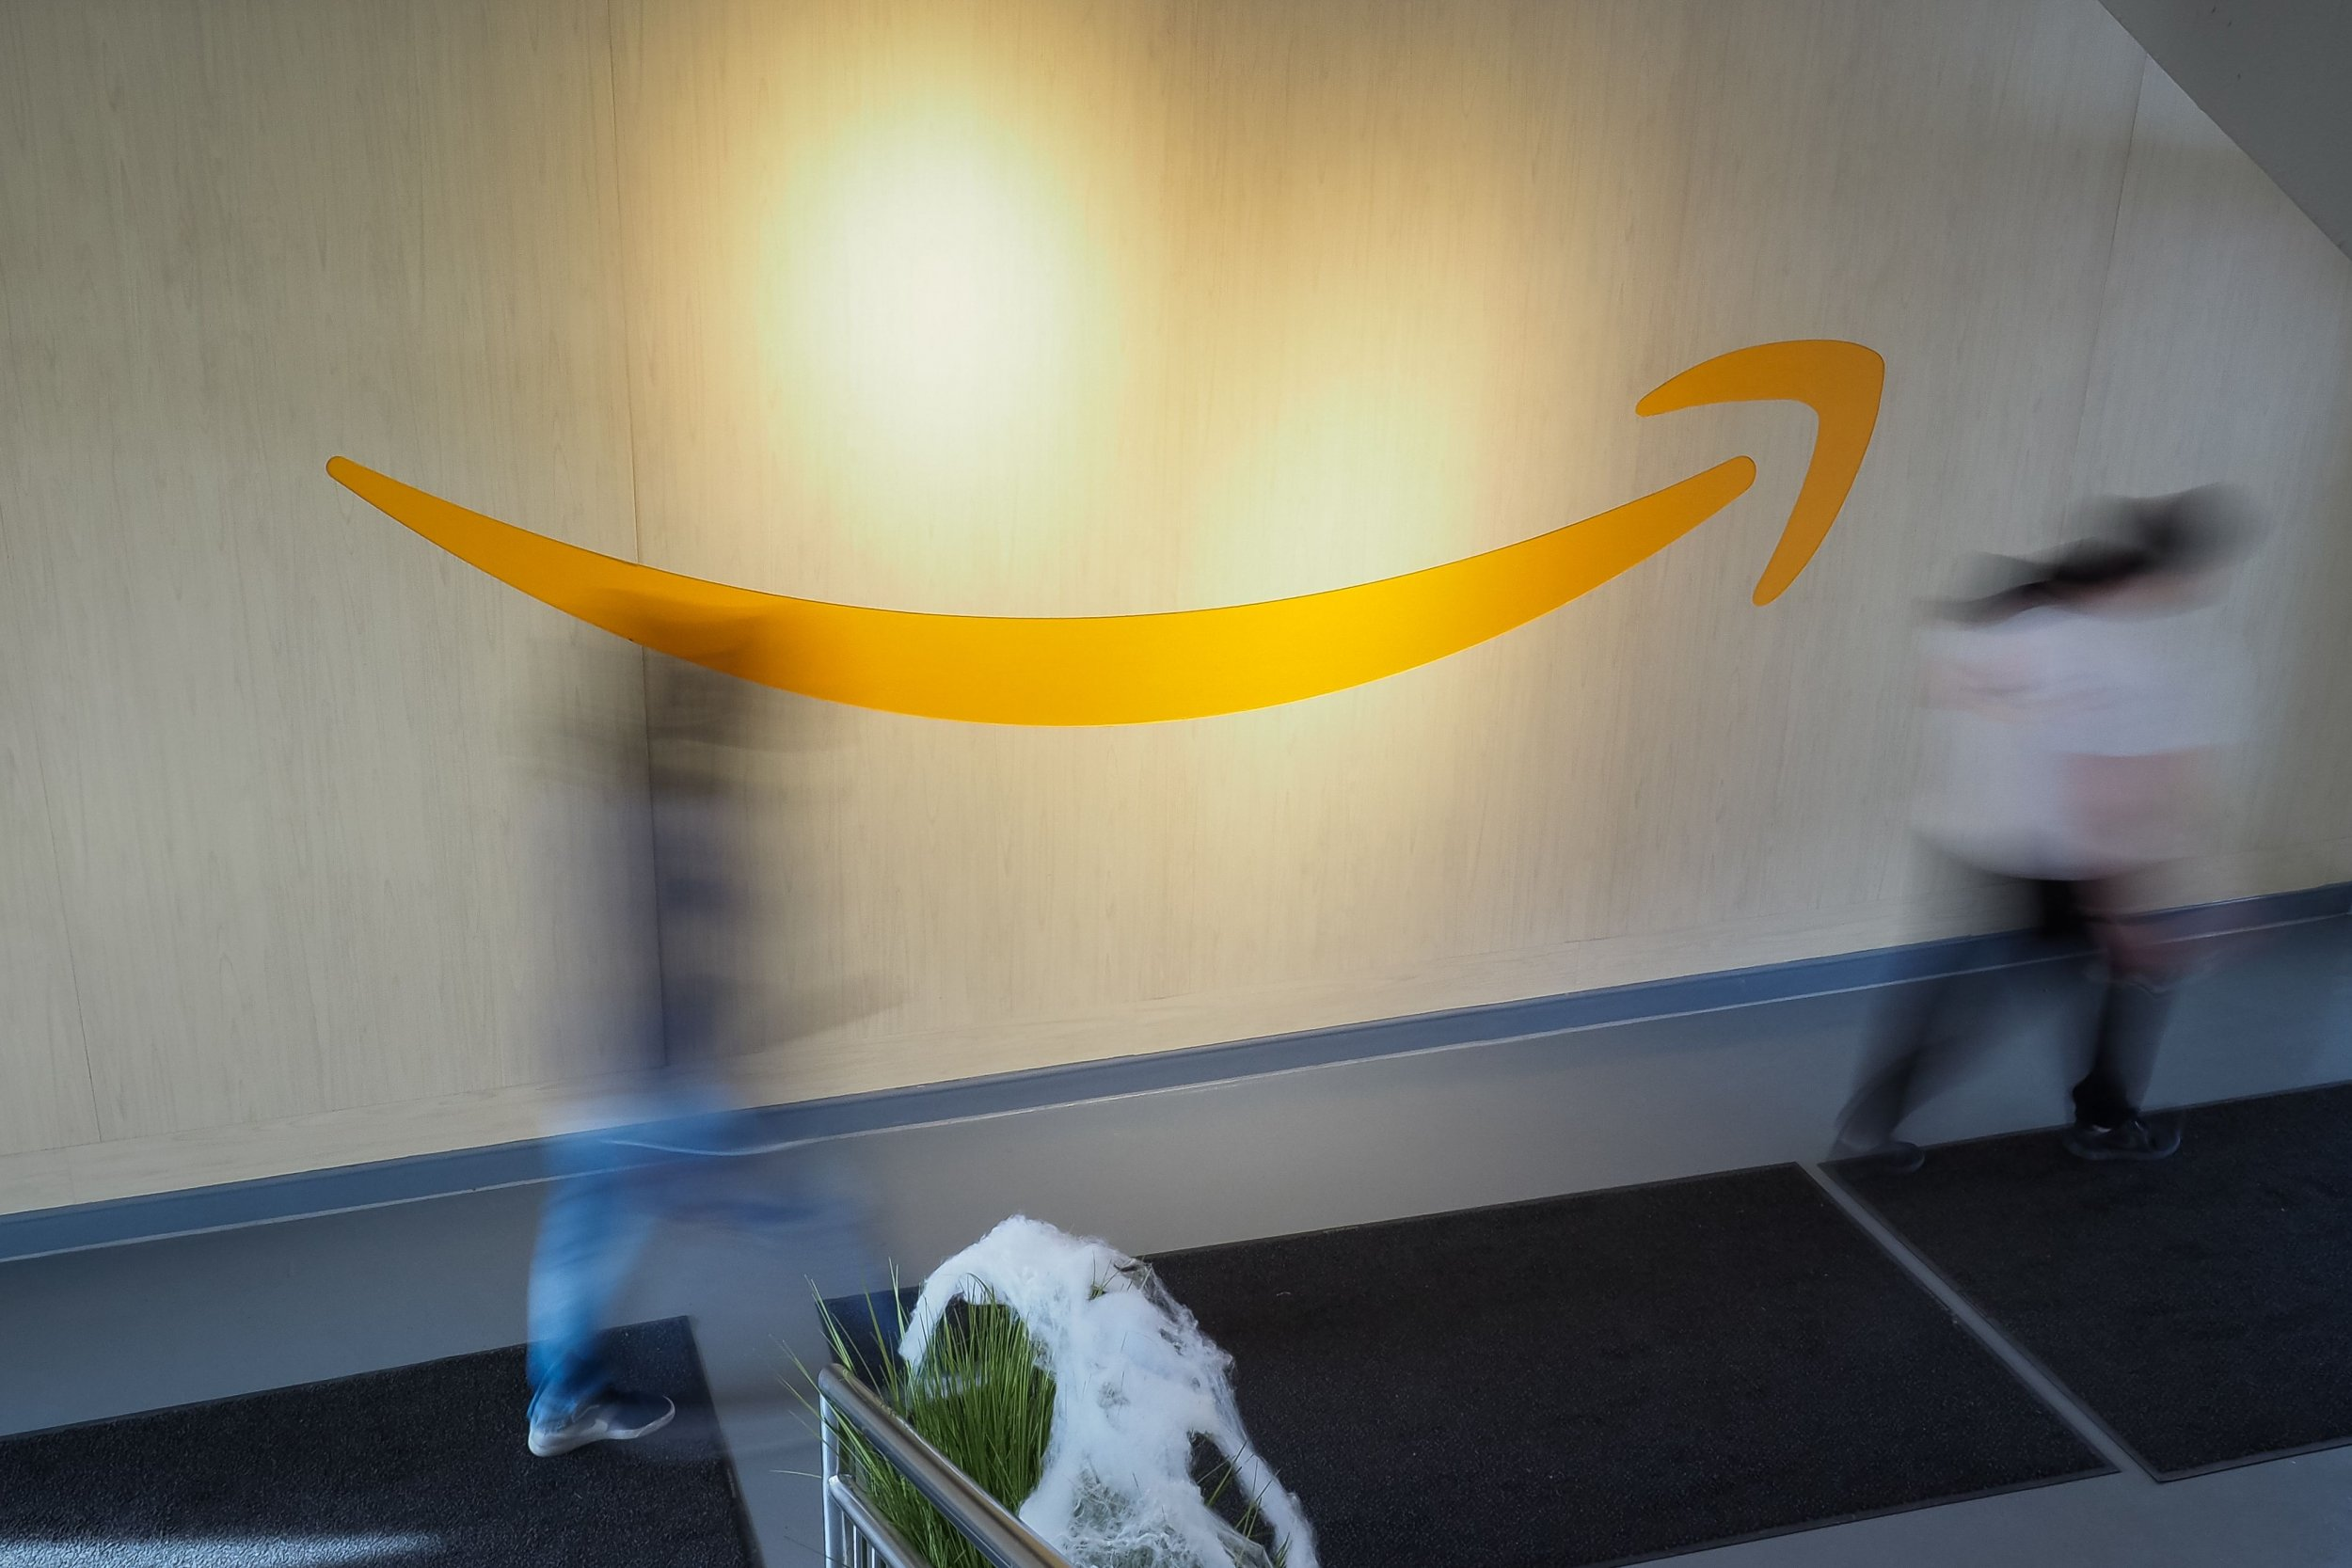 amazon logo on wall